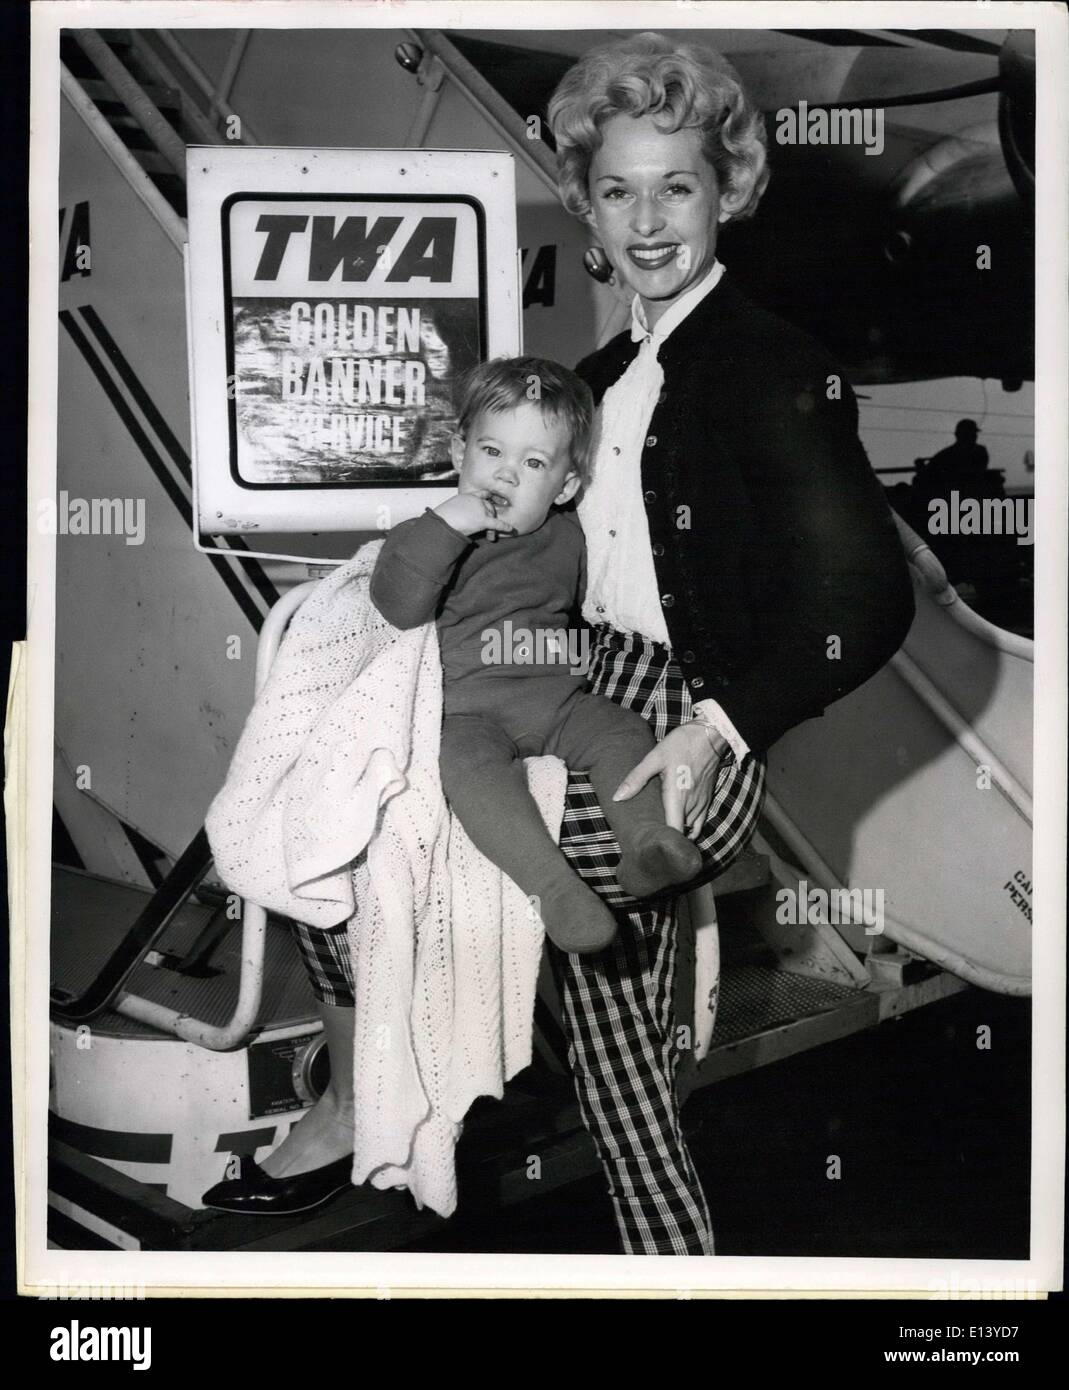 Mar. 31, 2012 - Idlewild Airport, N.Y. June 5: ''Mommy, I'm Not dressed'', exclaims little Melanie Griffith 9 months, after arriving aboard a TWA Super-G Constellation from Los Angeles. The embarrassed Miss and the her mother Mrs. Peter Griffith, better known in modeling circles as Tippi Hedren, were returning from TWO-week visit with Melanie's grandparents. - Stock Image